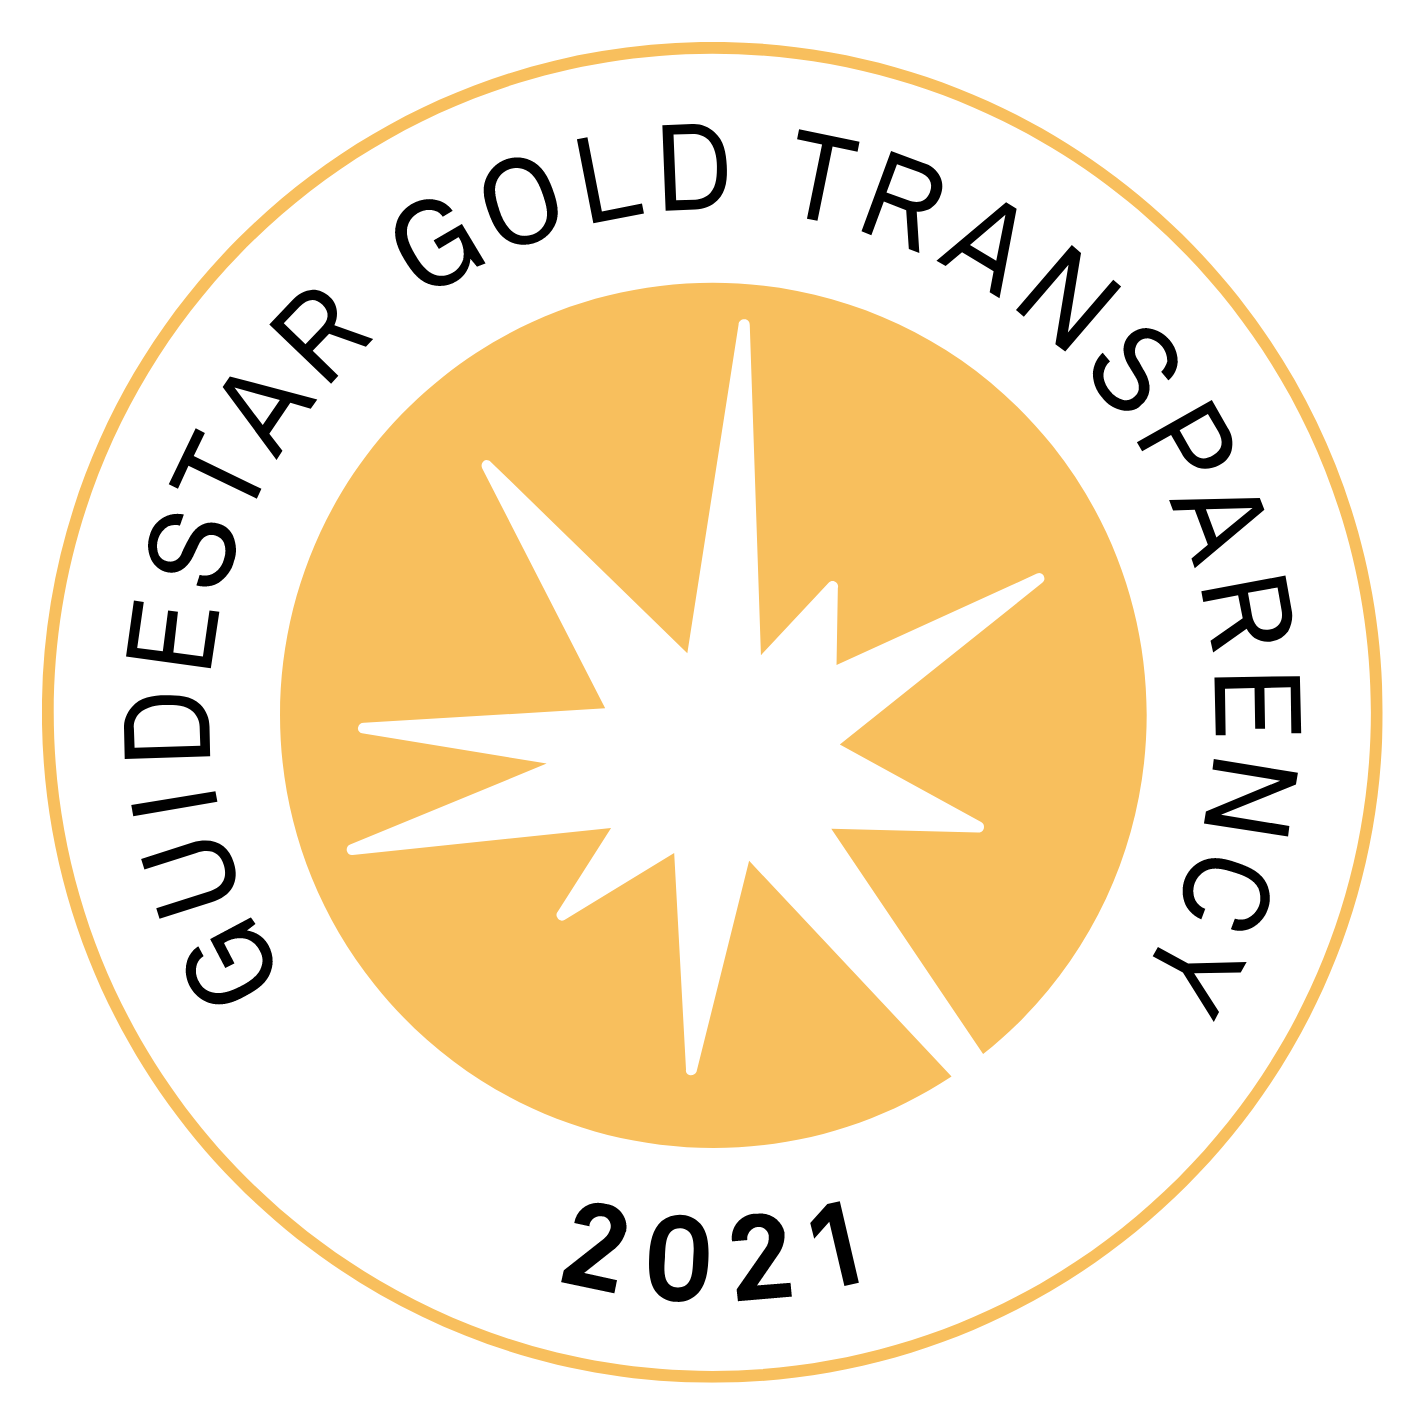 Guidestar Gold Transparancy 2021 seal in gold color